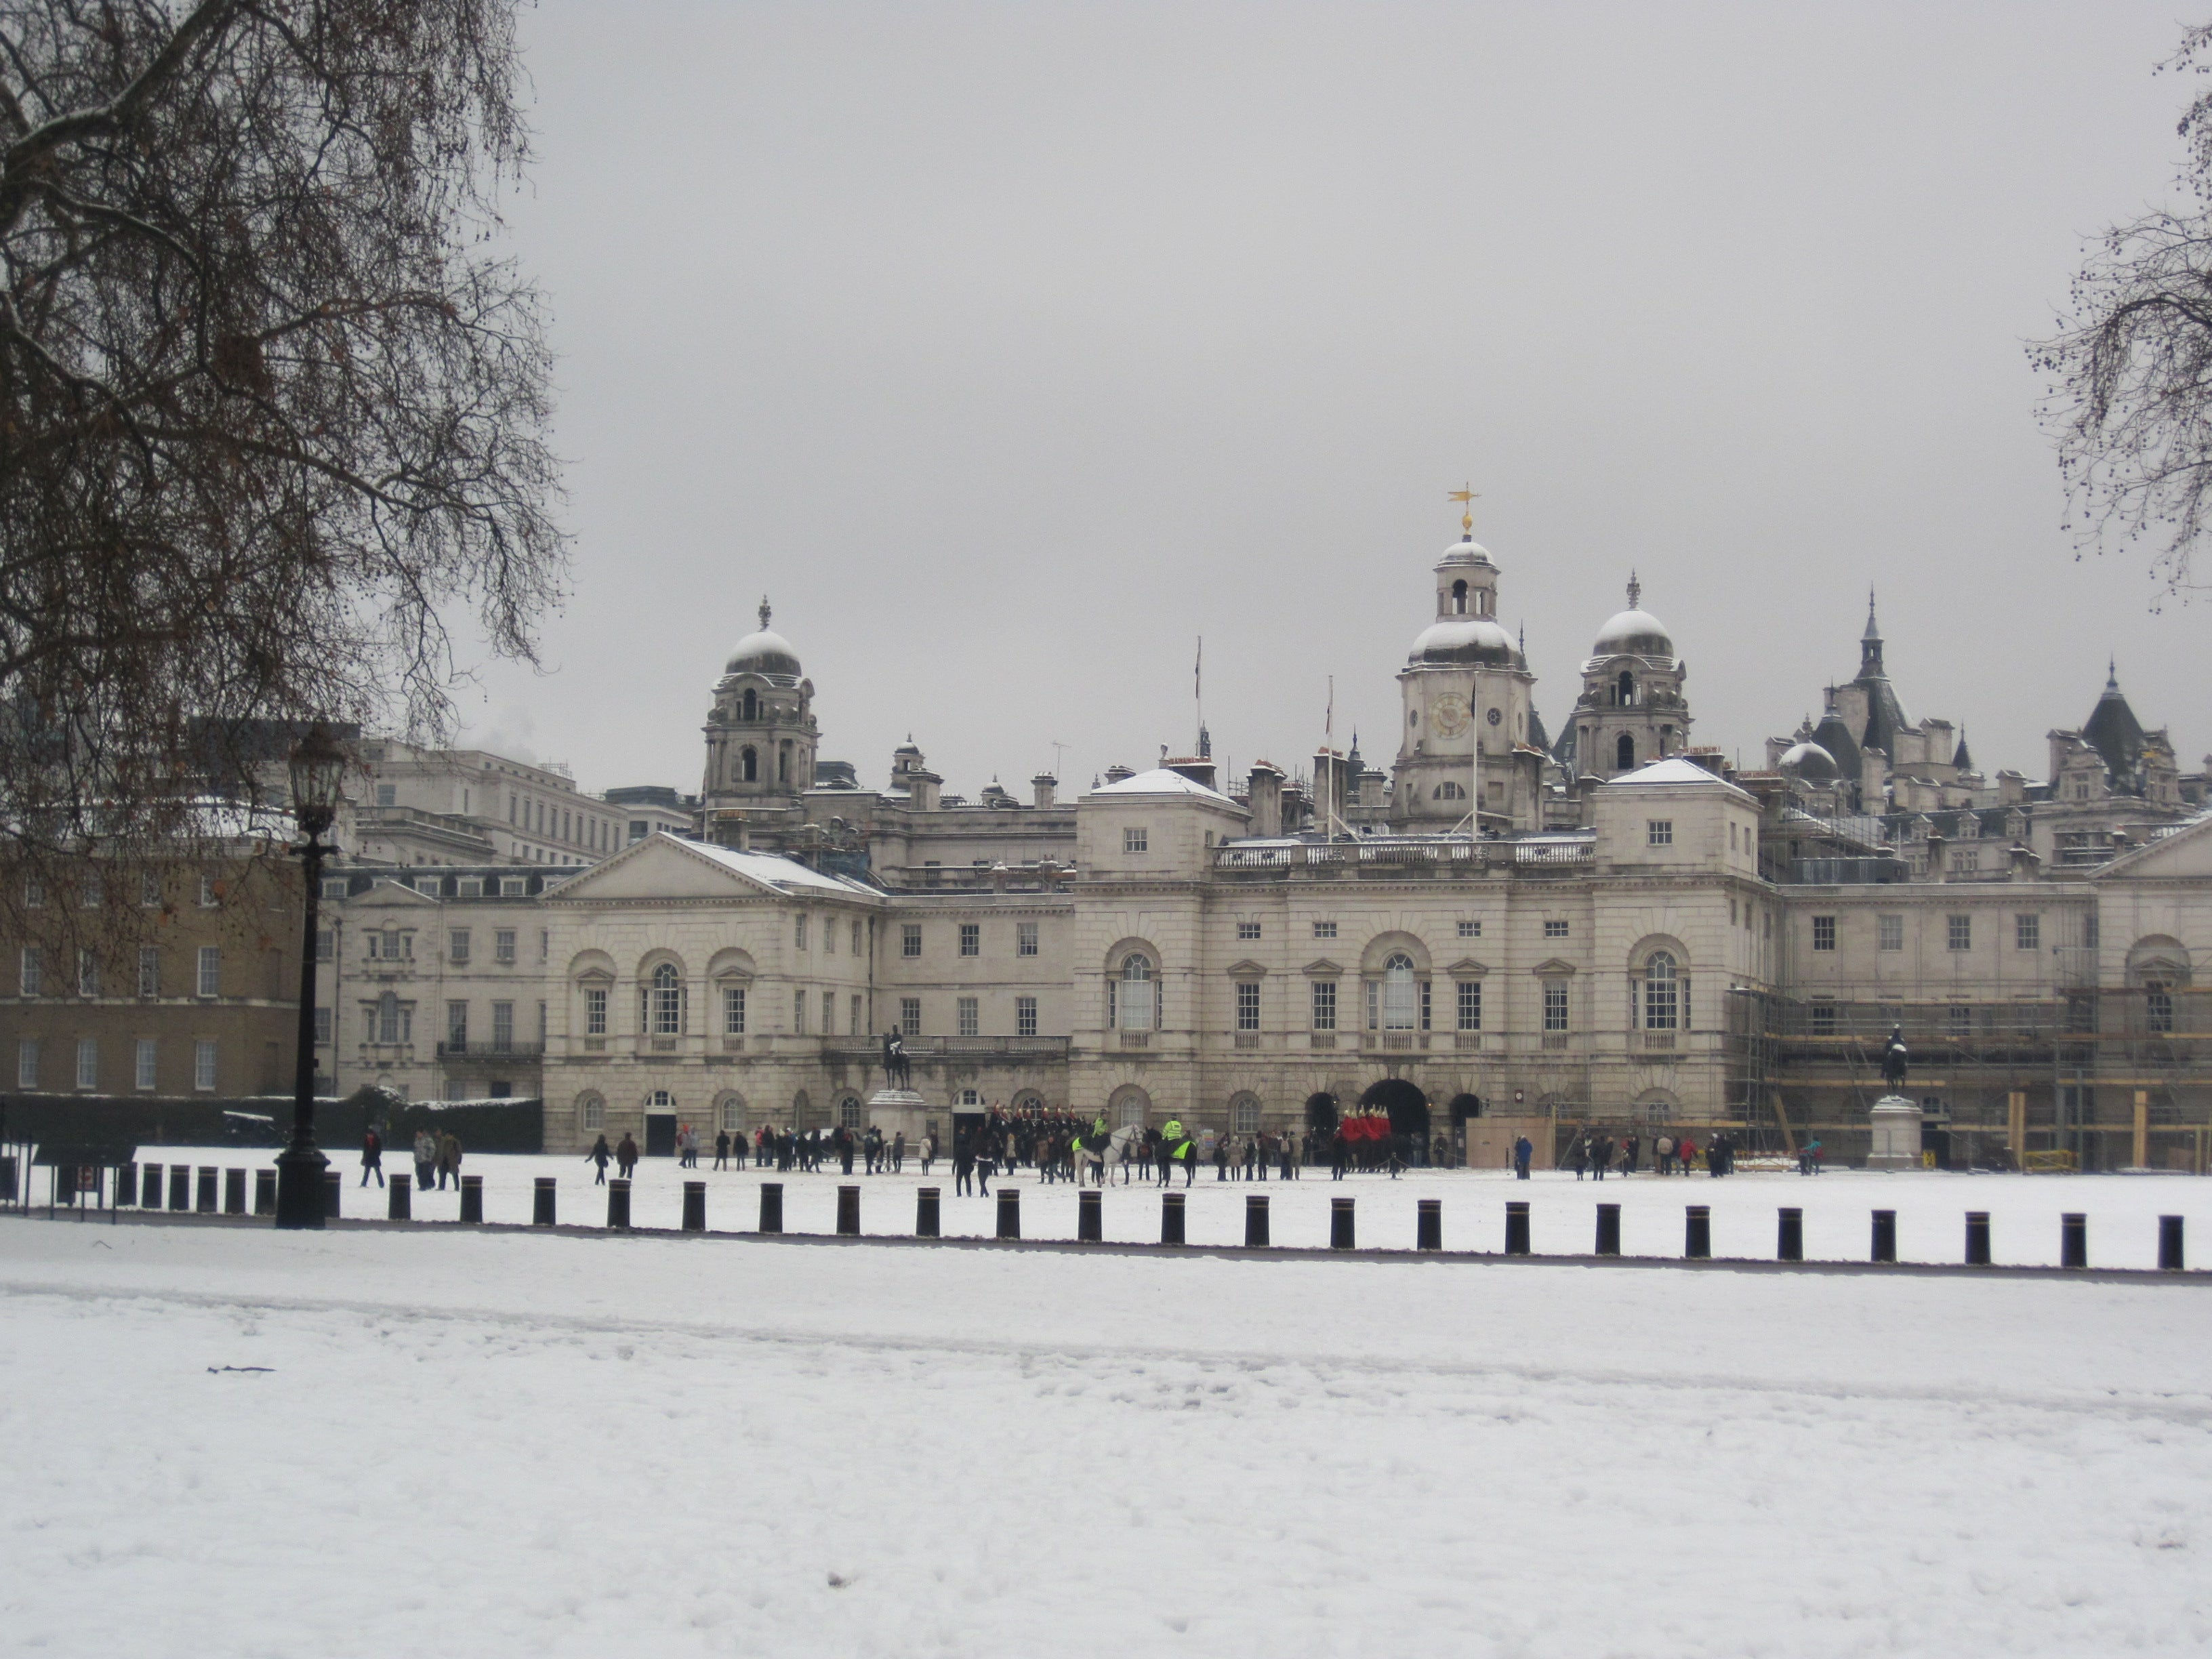 Invierno en Whitehall Palace